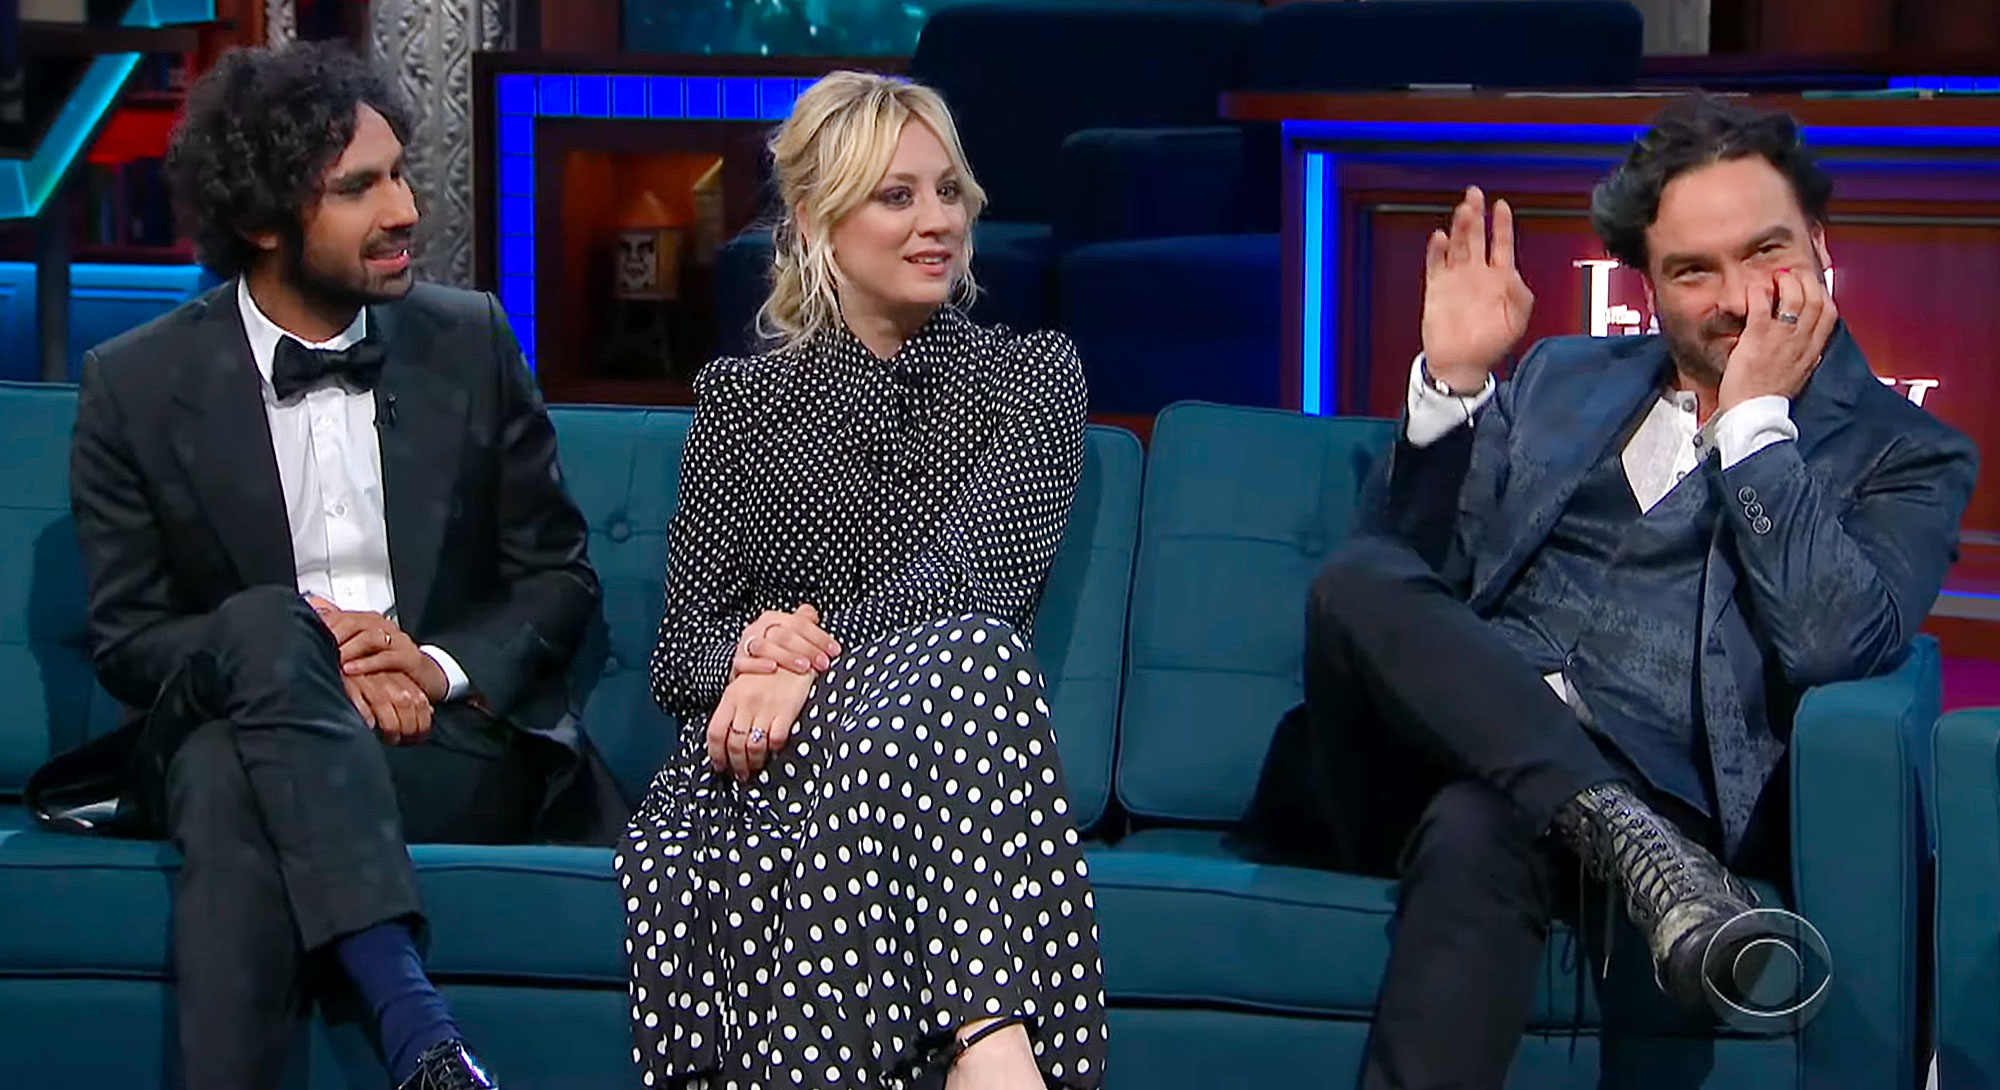 The Late Show With Stephen Colbert Kunal Nayyar Kaley Cuoco Johnny Galecki Sex In Big Bang Theory Dressing Room